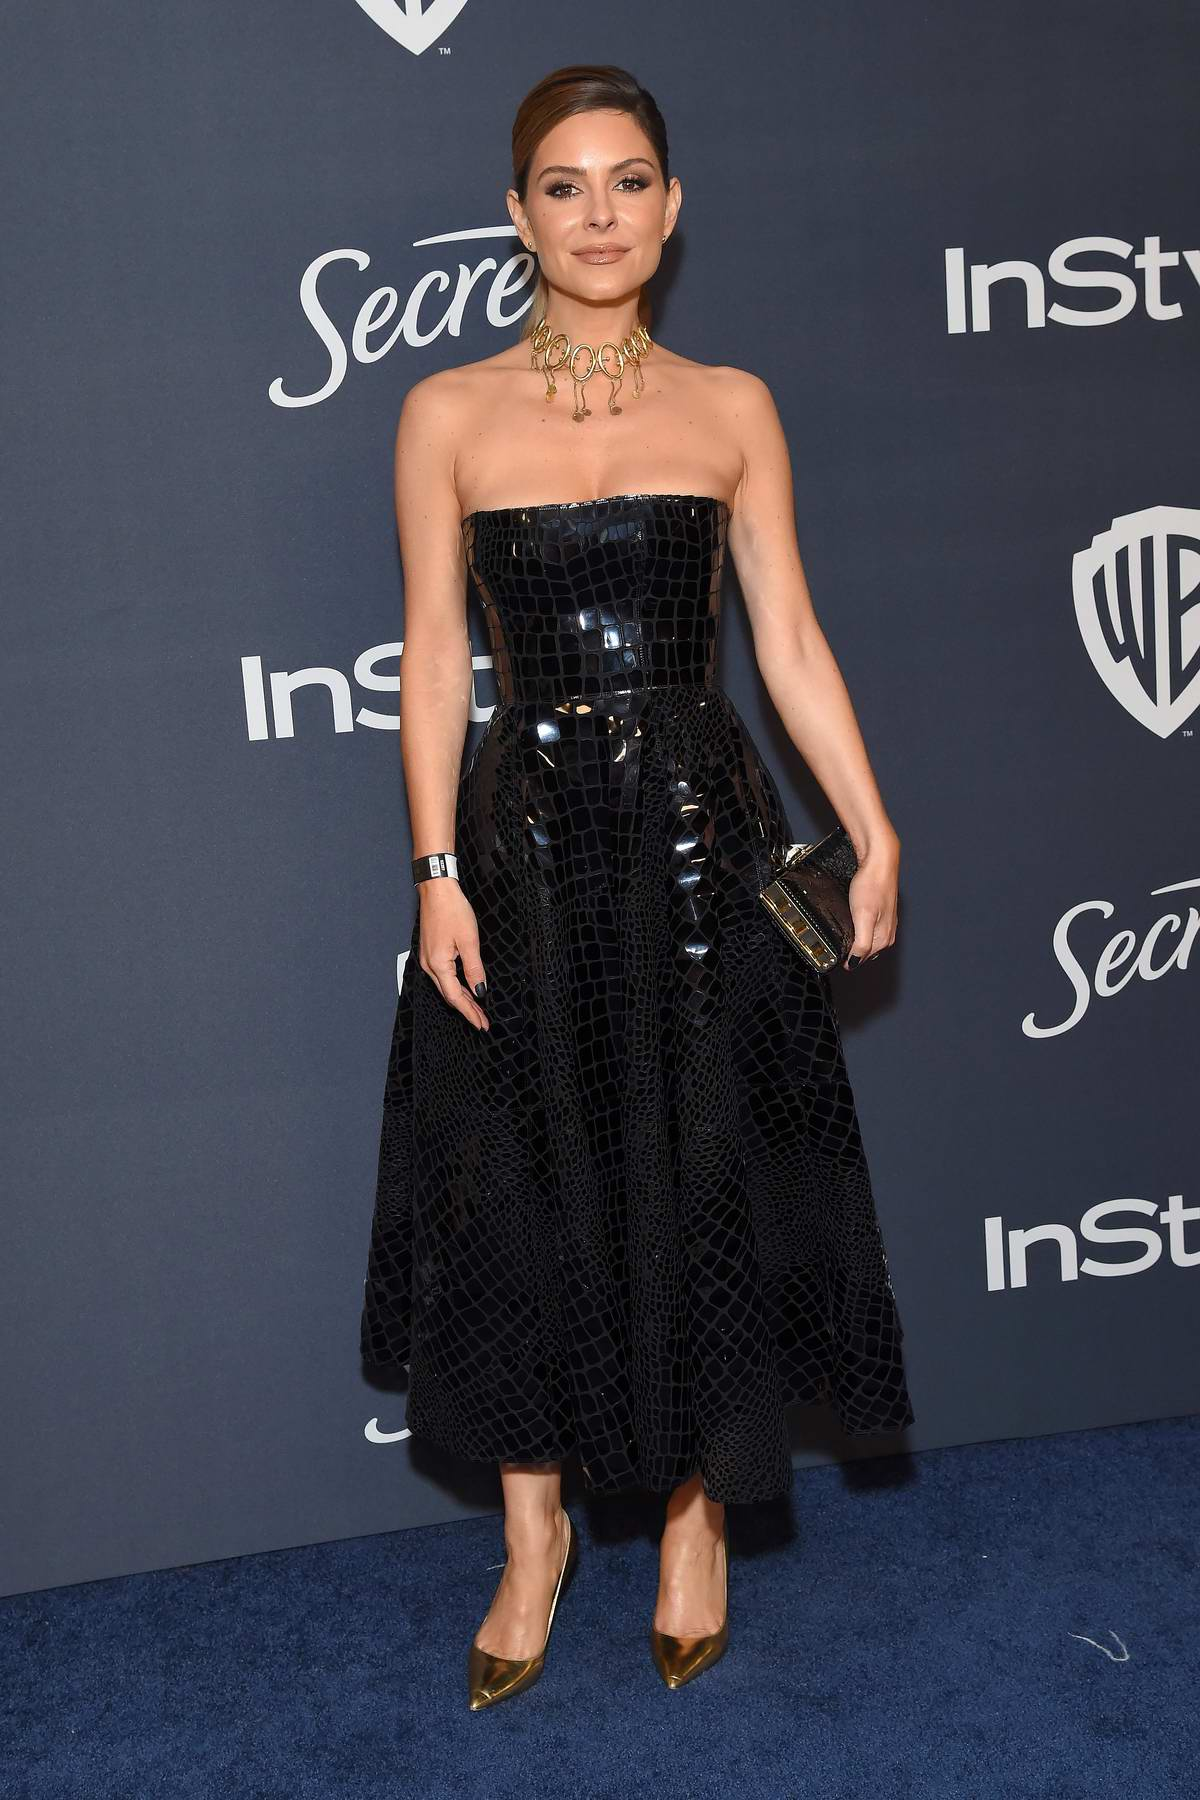 Maria Menounos attends the 21st annual Warner Bros and InStyle Golden Globe After-Party in Beverly Hills, California